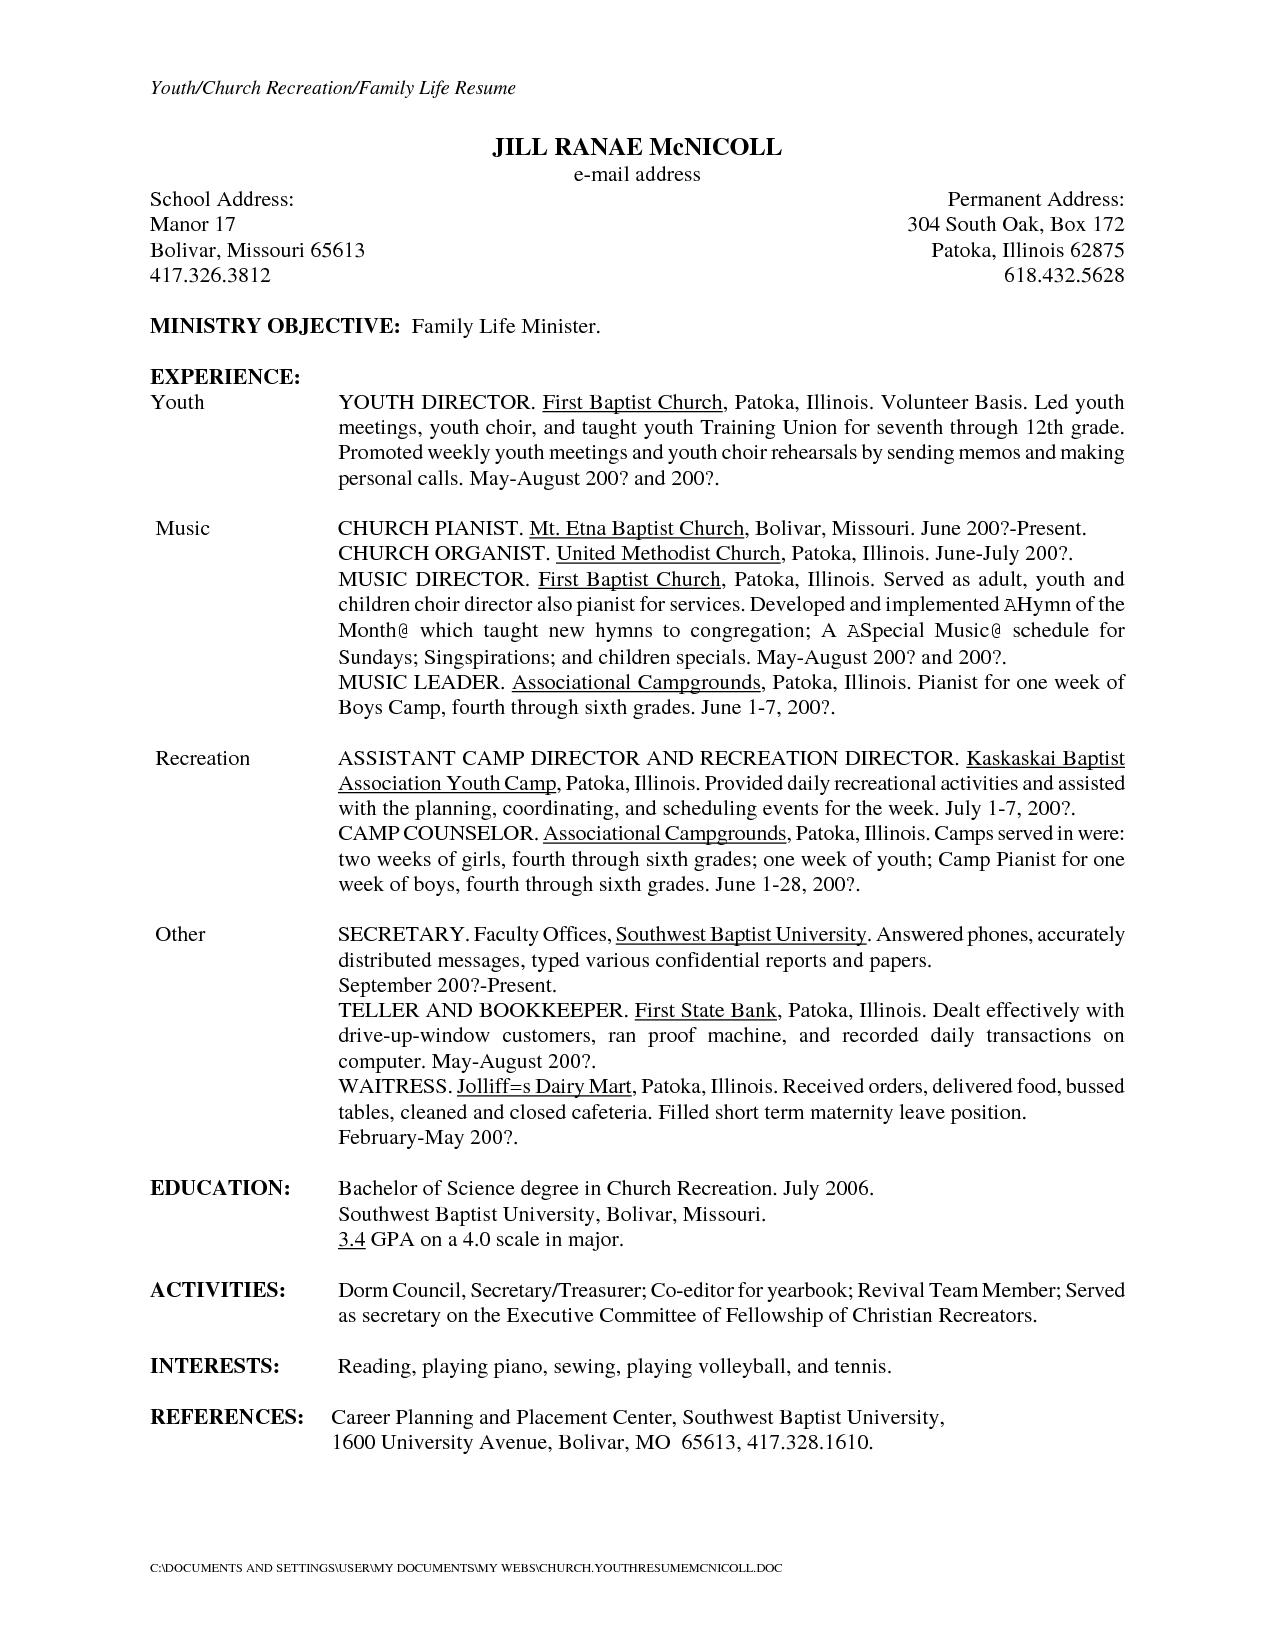 School Secretary Cover Letter Template - Resume Template for Secretary Resume Templates Nursing Unit Clerk